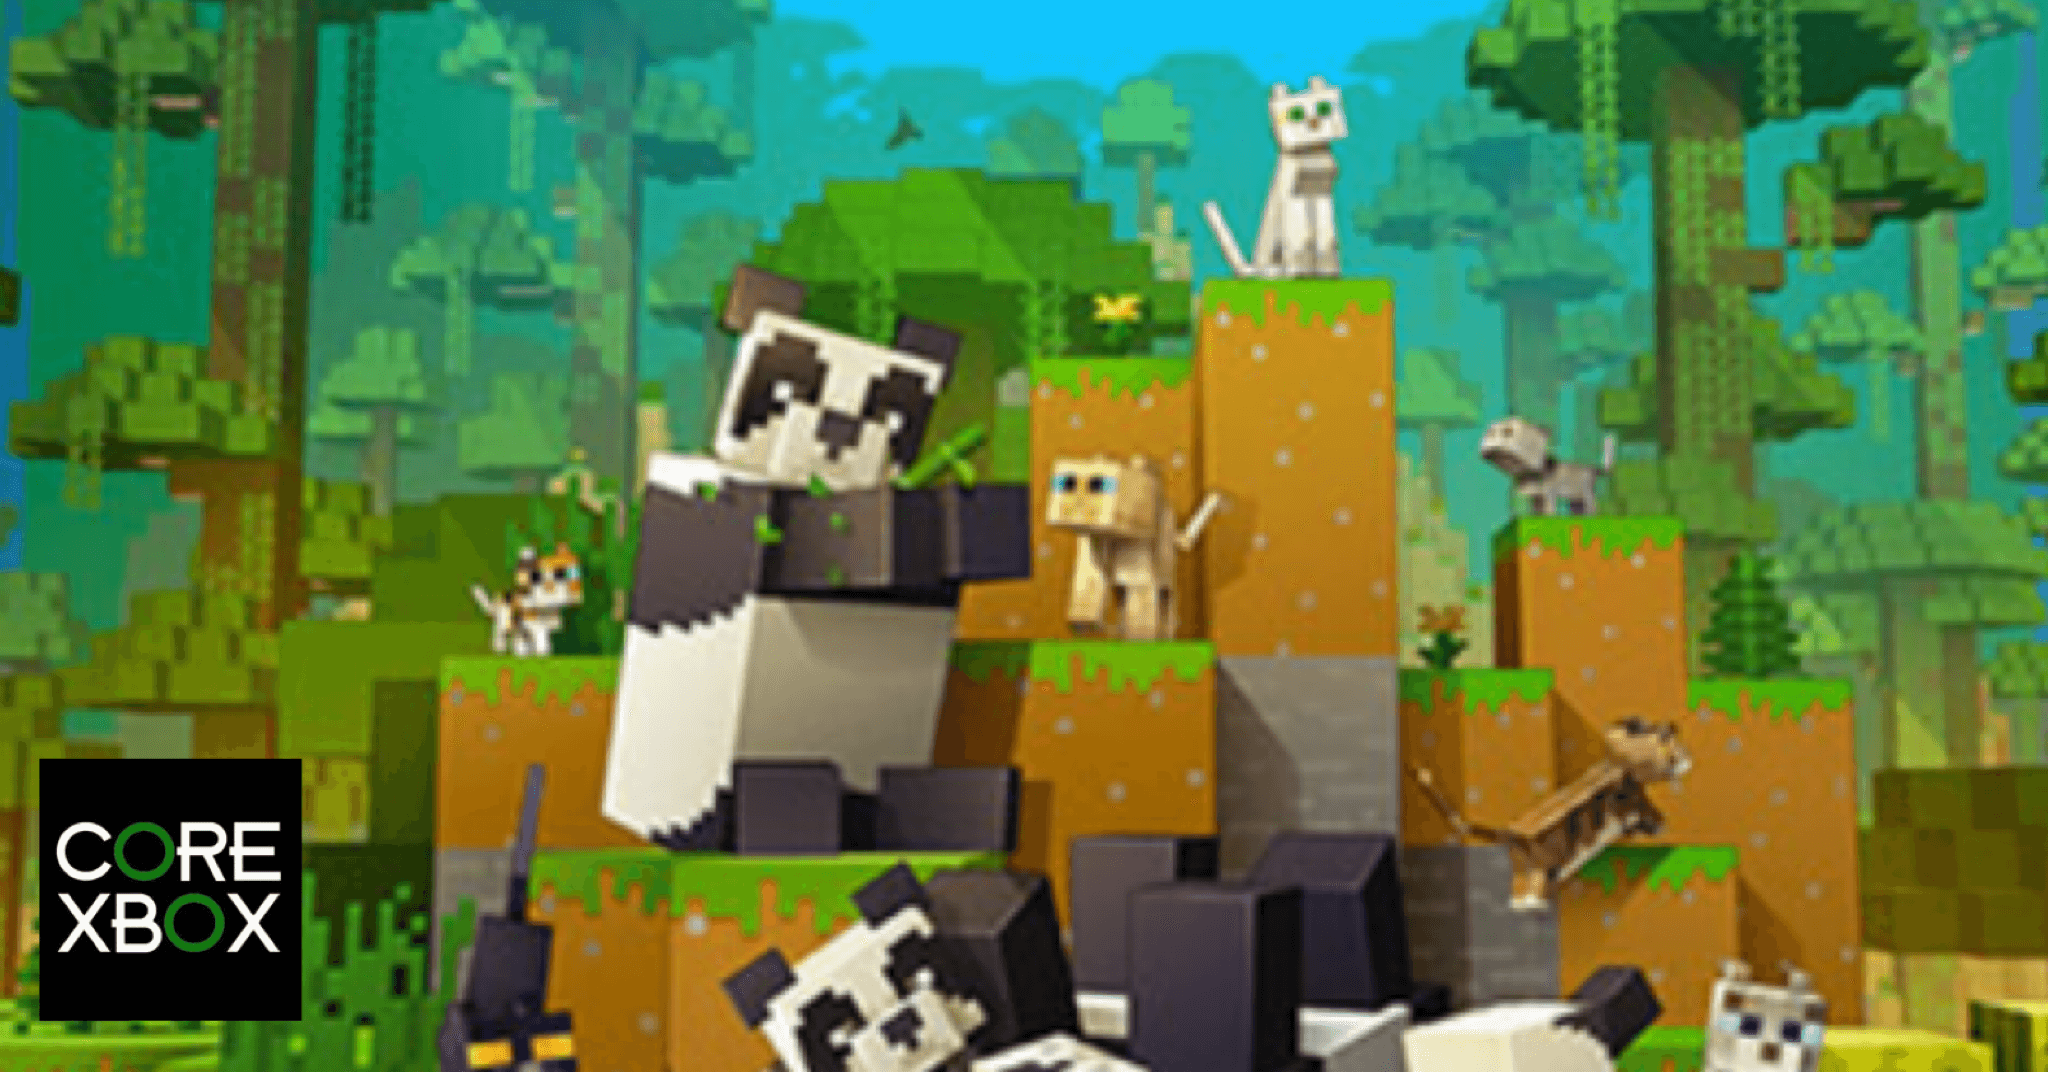 minecraft news, reviews and features for xbox one series s/x